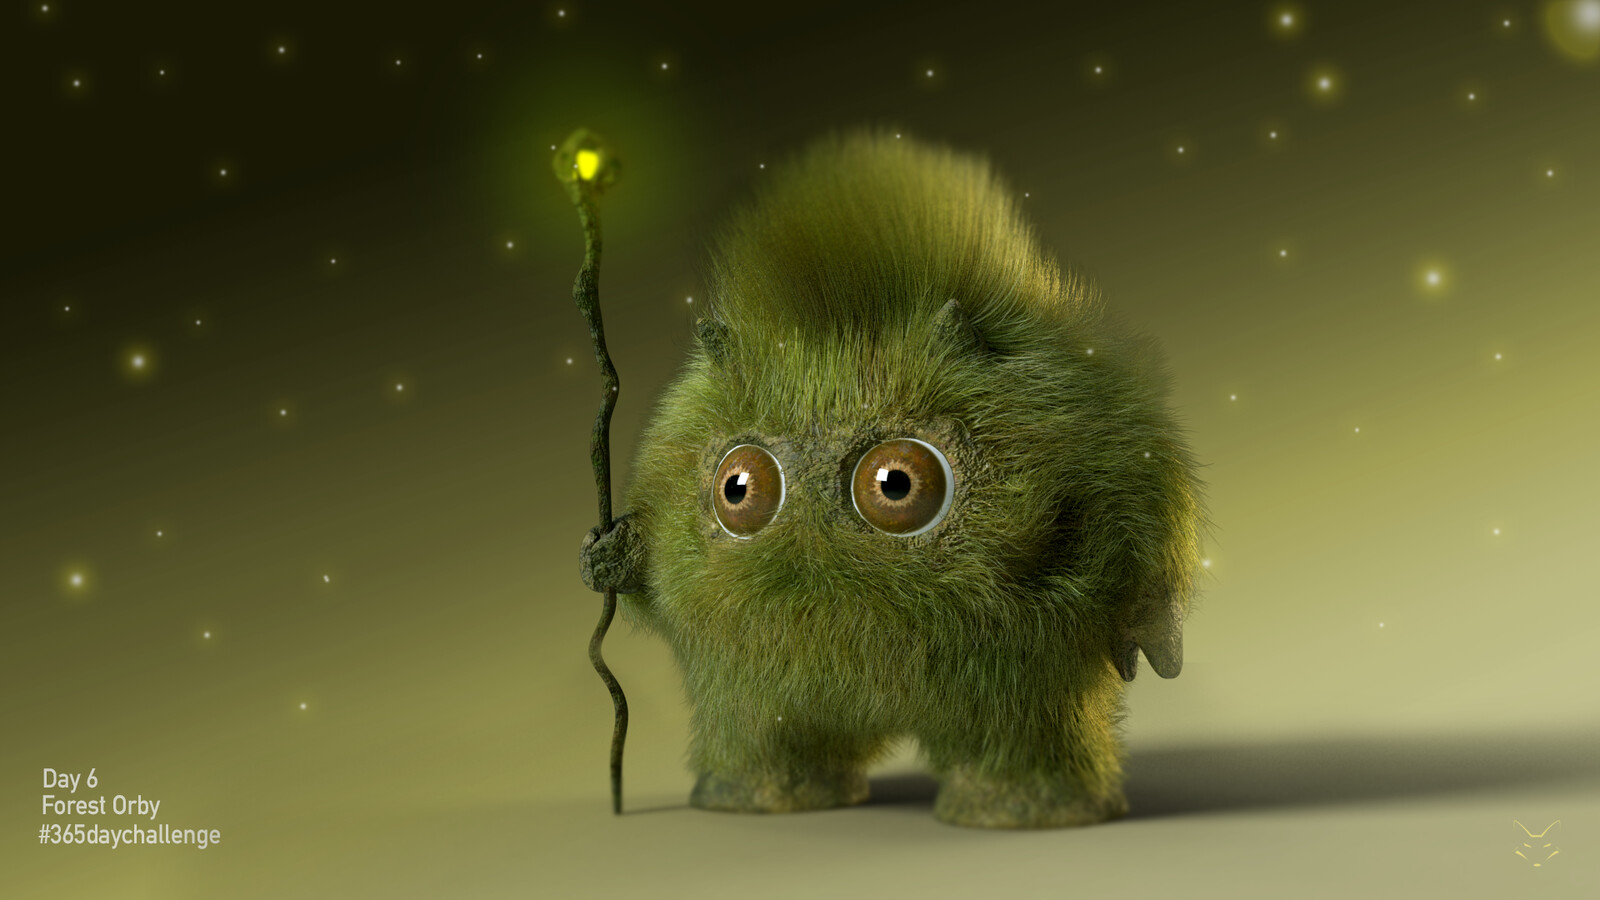 Forest Orby